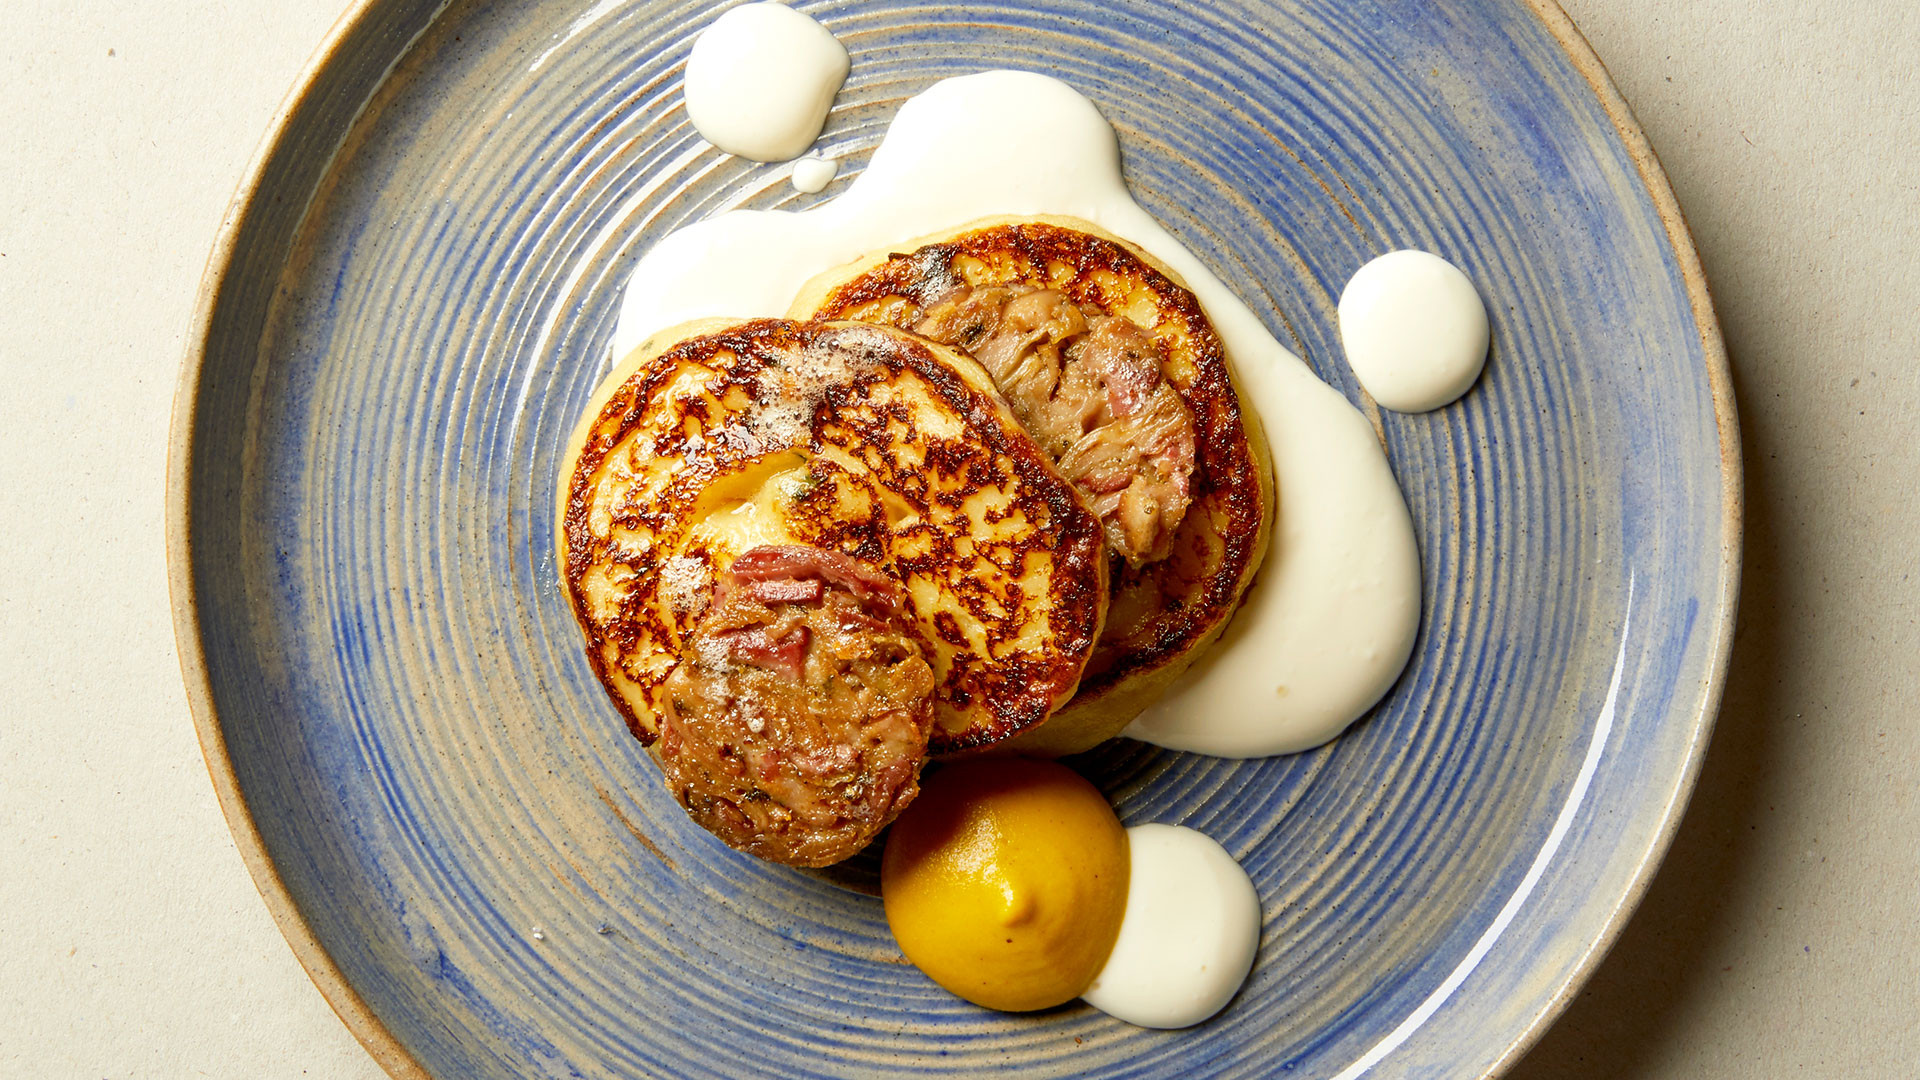 Bacon crapiaux with andouillette and mustard from Tate Modern L9 Restaurant